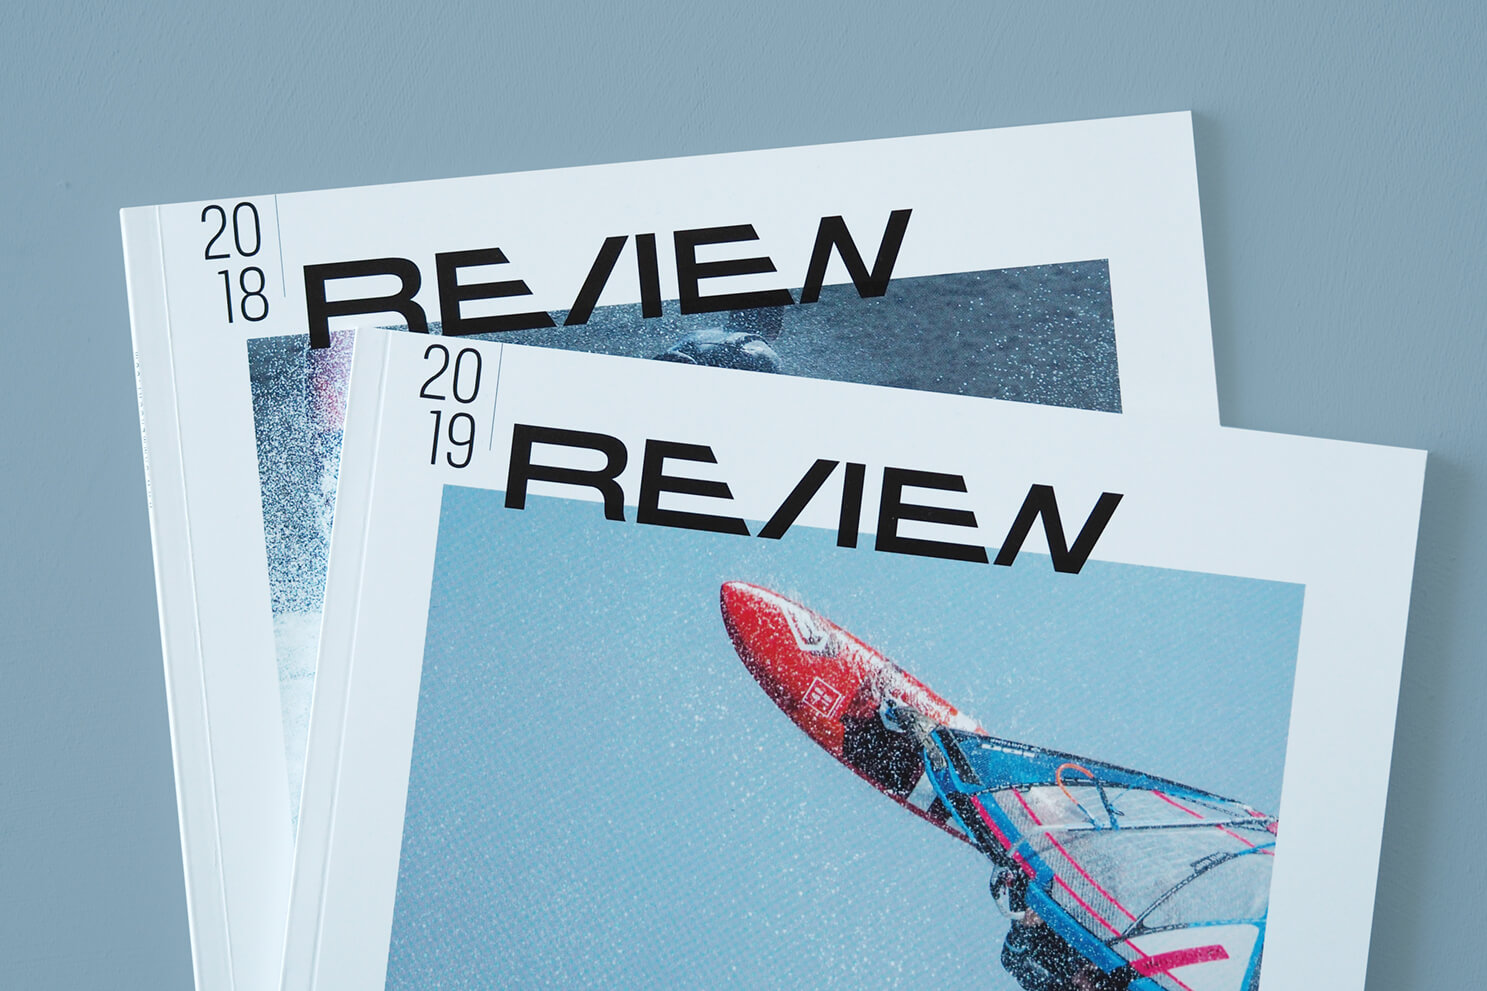 Sammersurf review, editorial design, Magazin, Rückblick,